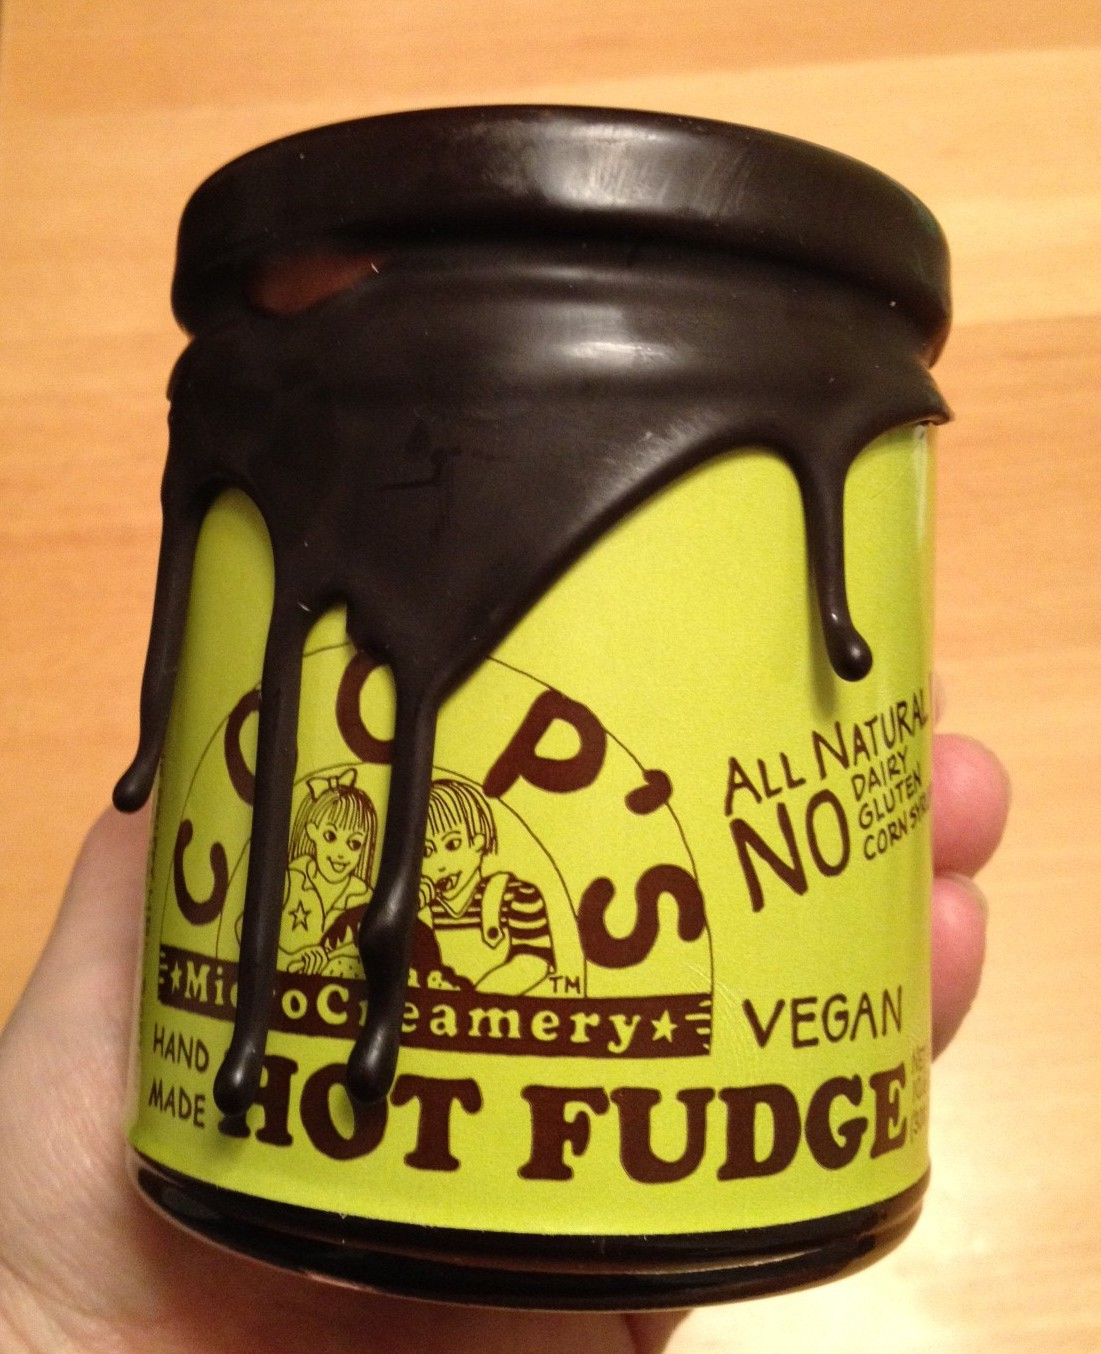 Vegan Hot Fudge (Coop's Microcreamery) Review